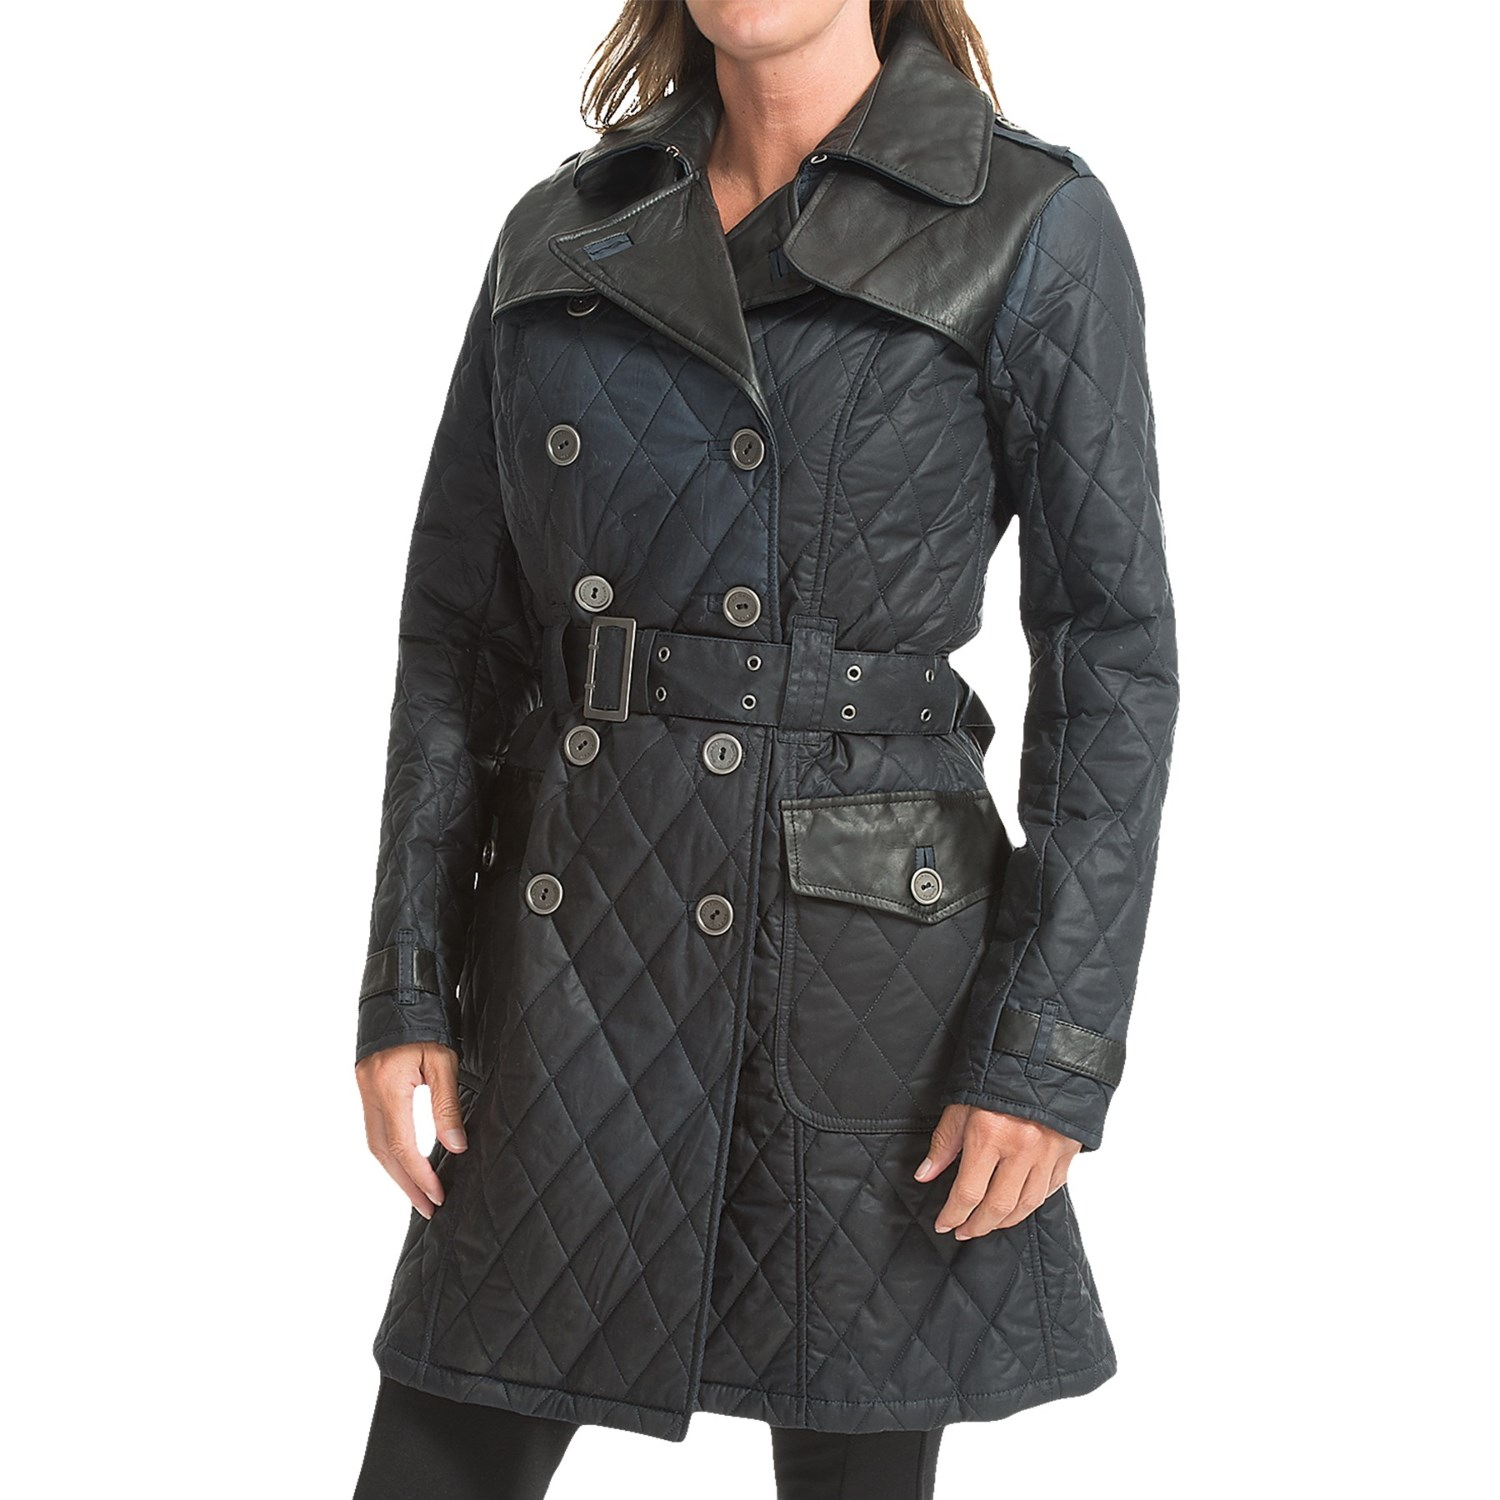 Barbour womens double breasted navy peacoat